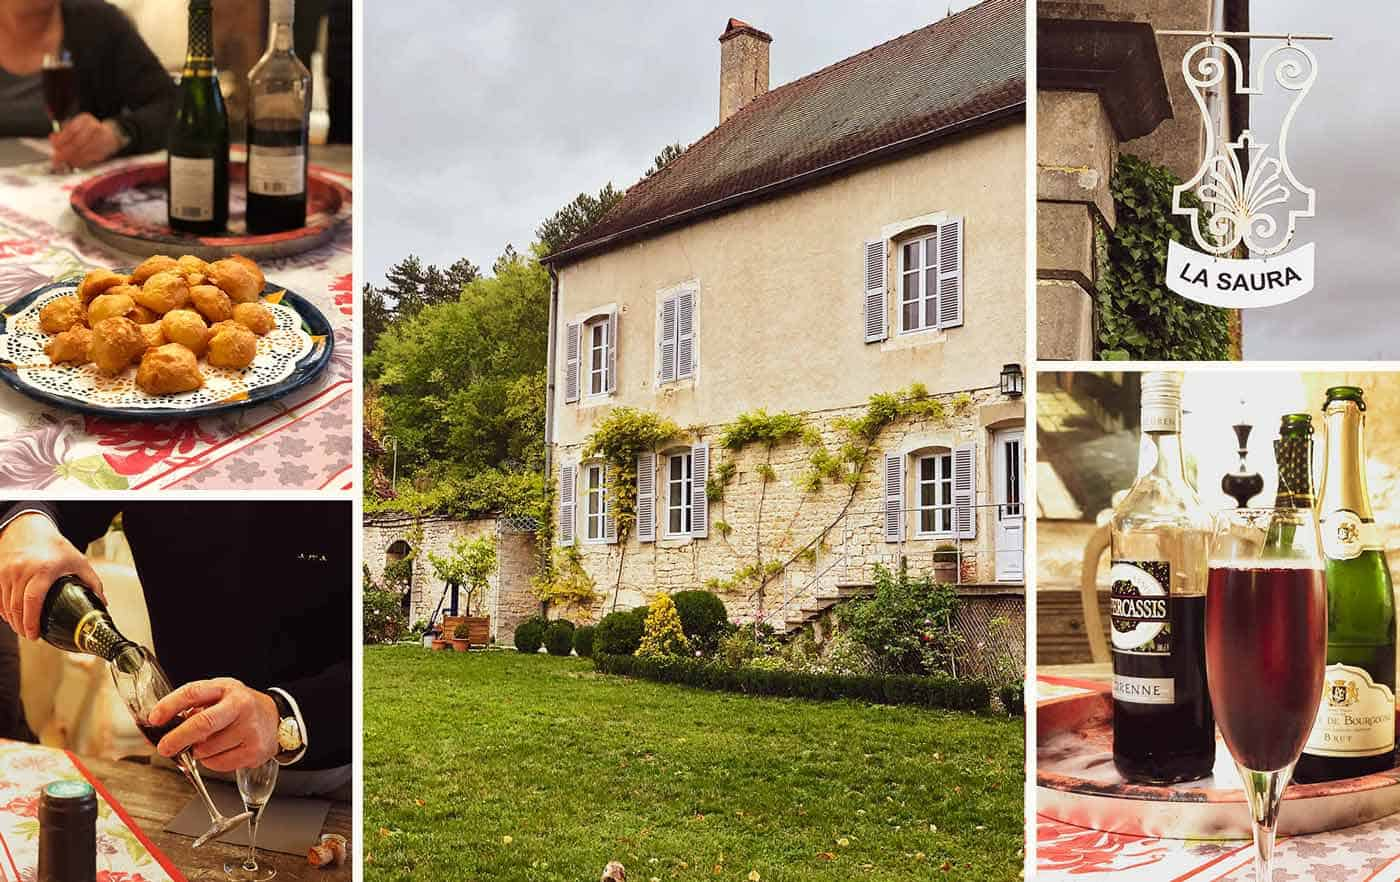 La Saura - amazing French villa bed & breakfast in Burgundy, France